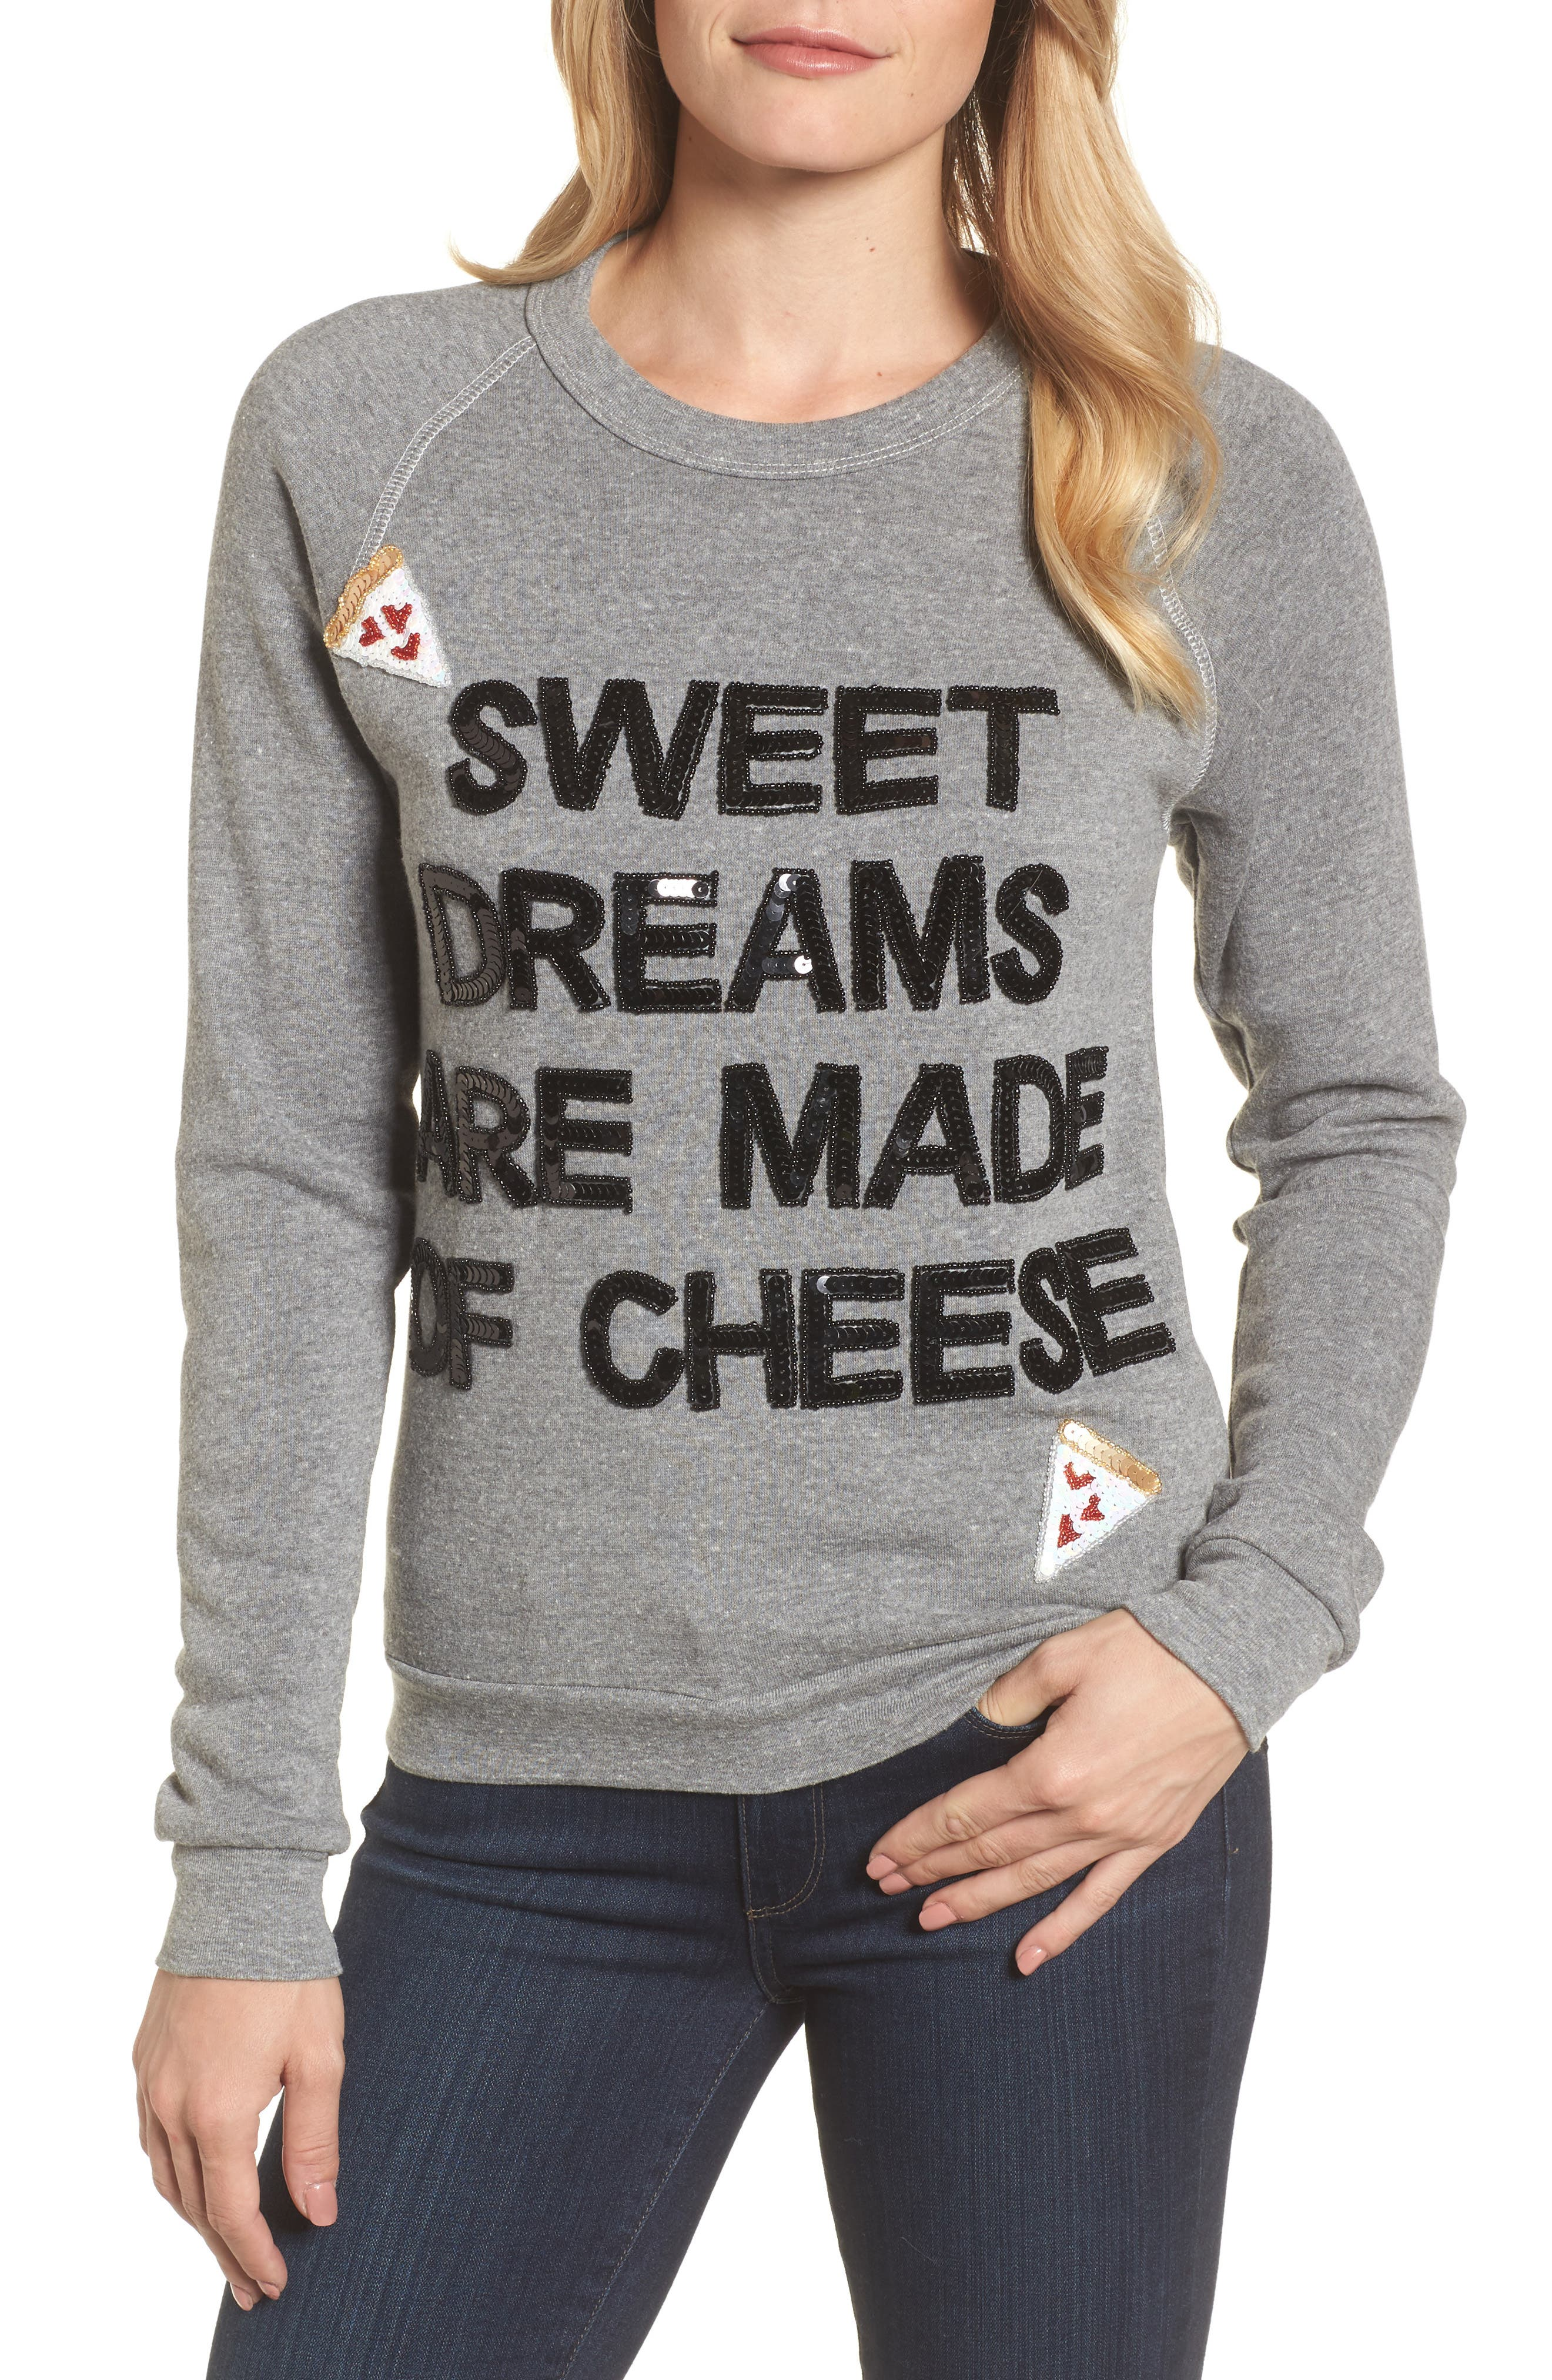 Sweet Dreams are Made of Cheese Sweatshirt,                         Main,                         color,